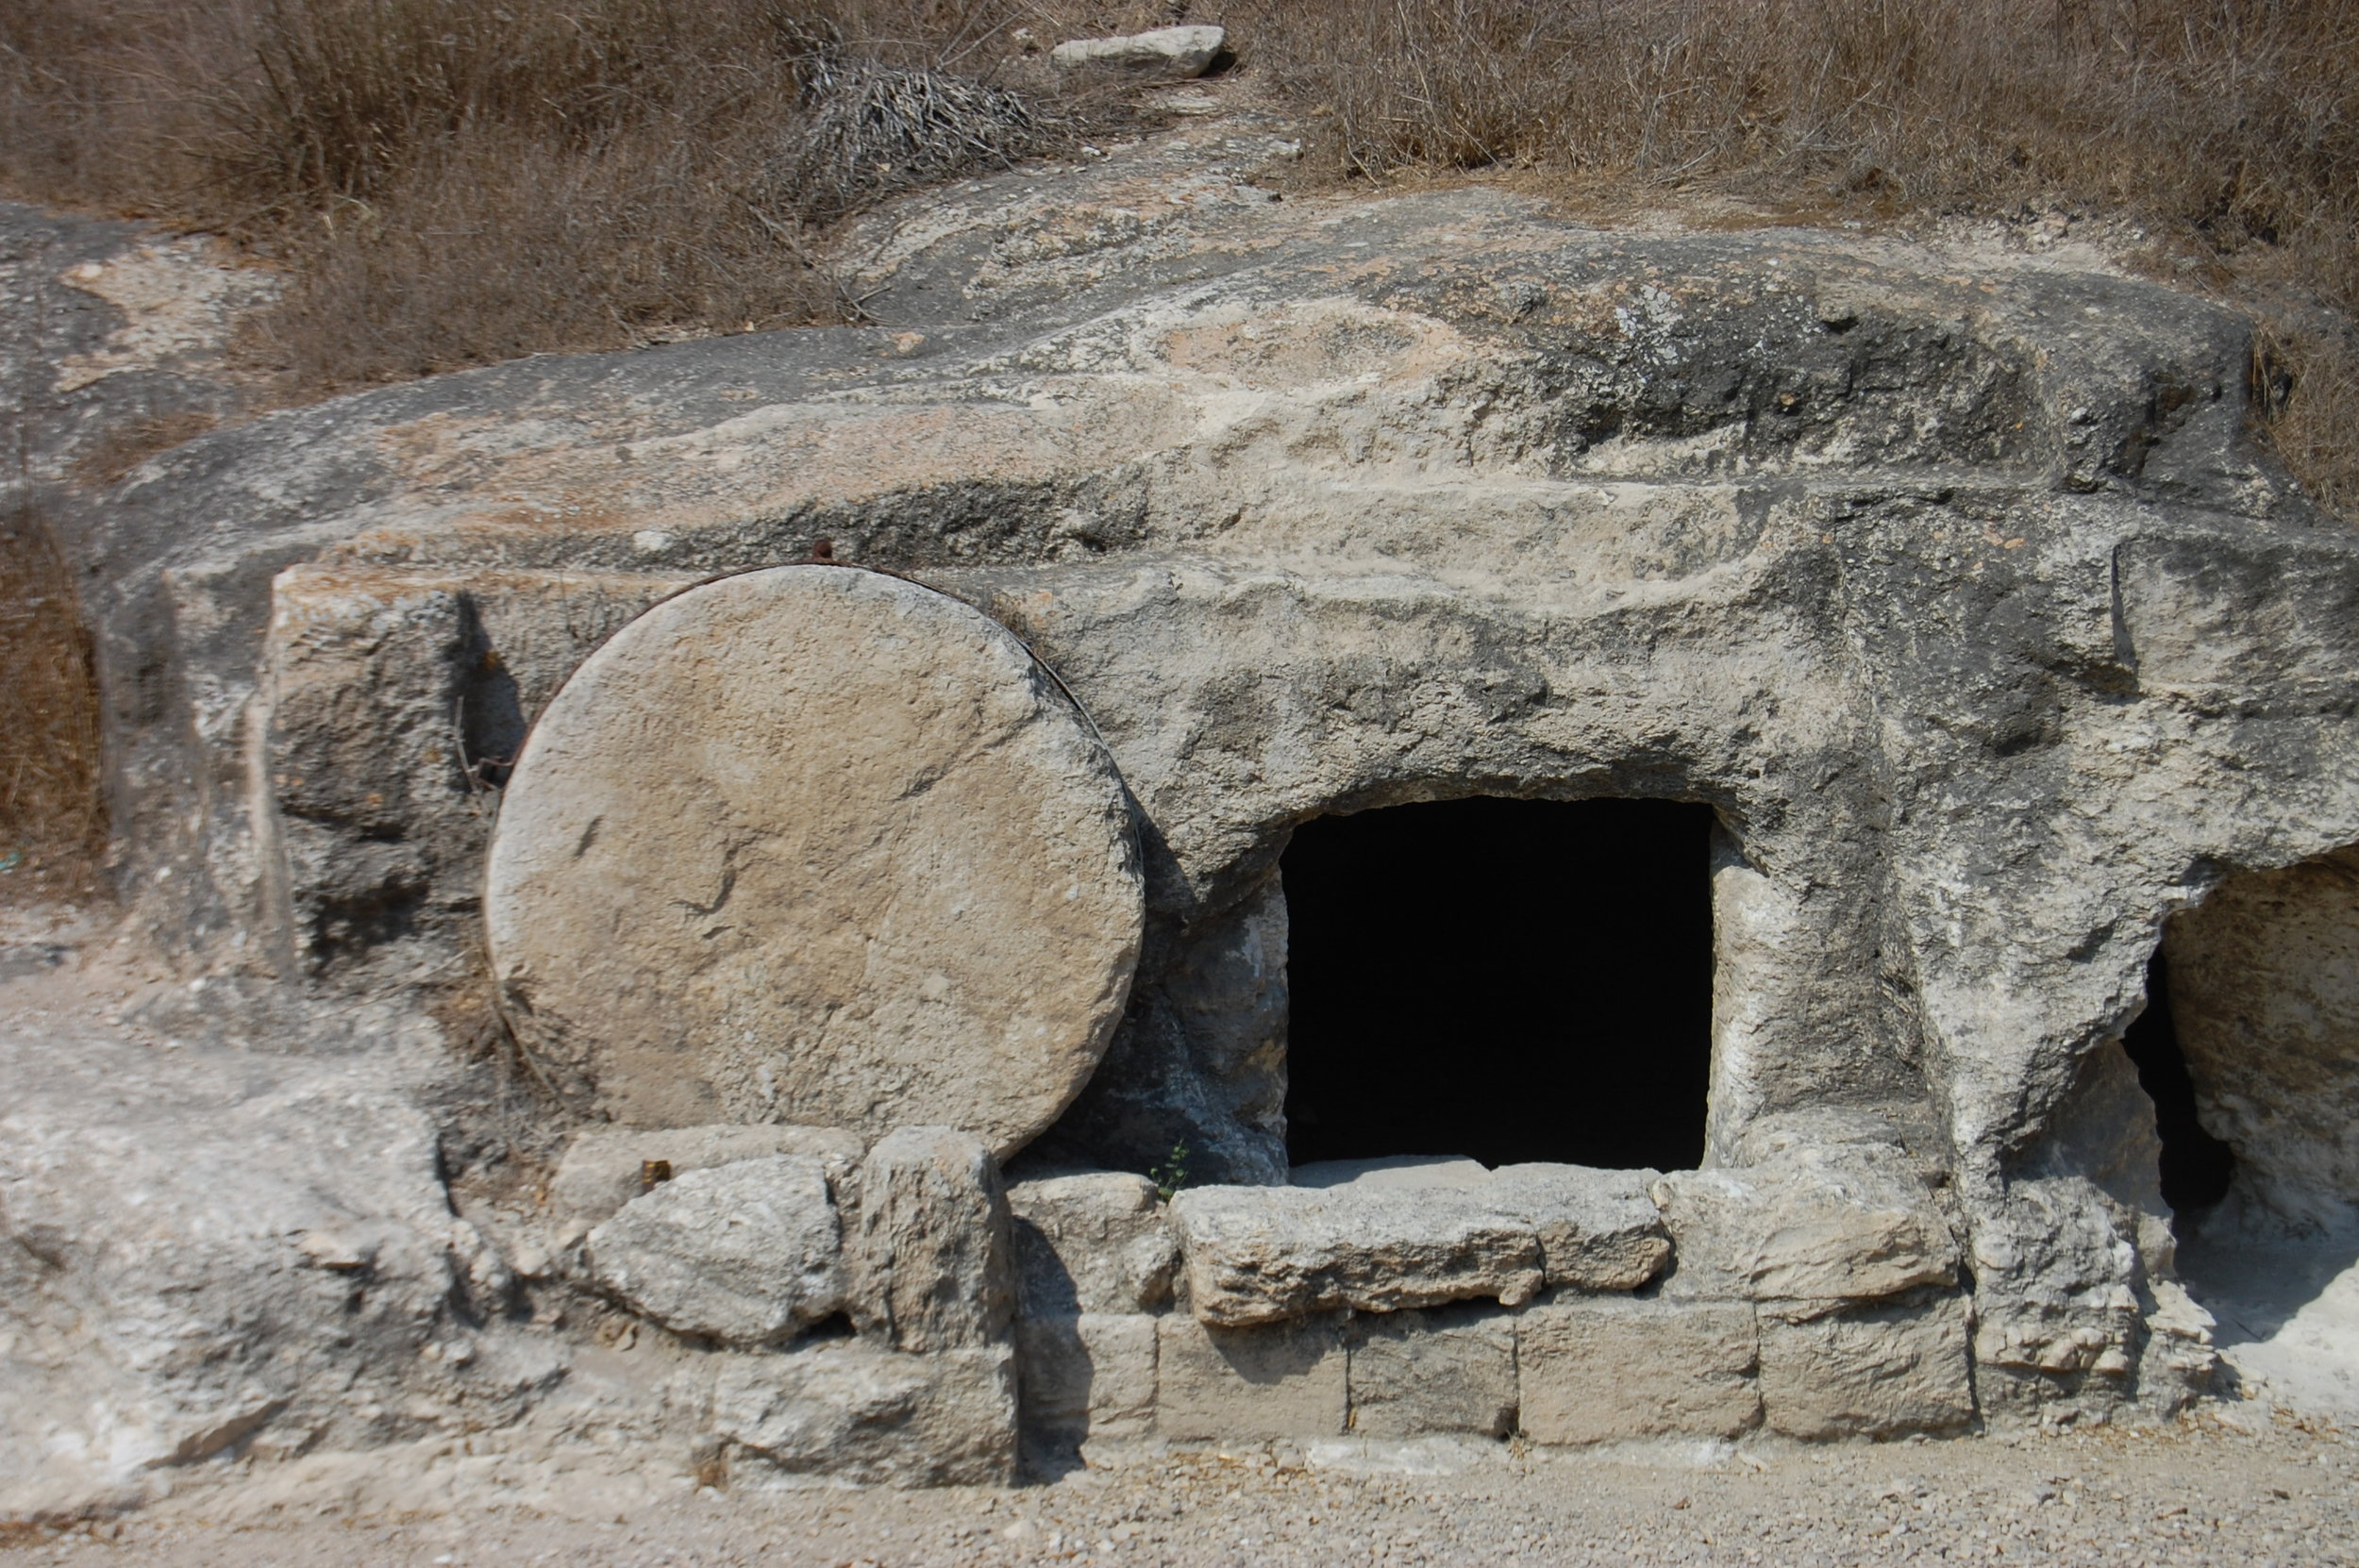 tomb site similar to the resurrection of Jesus